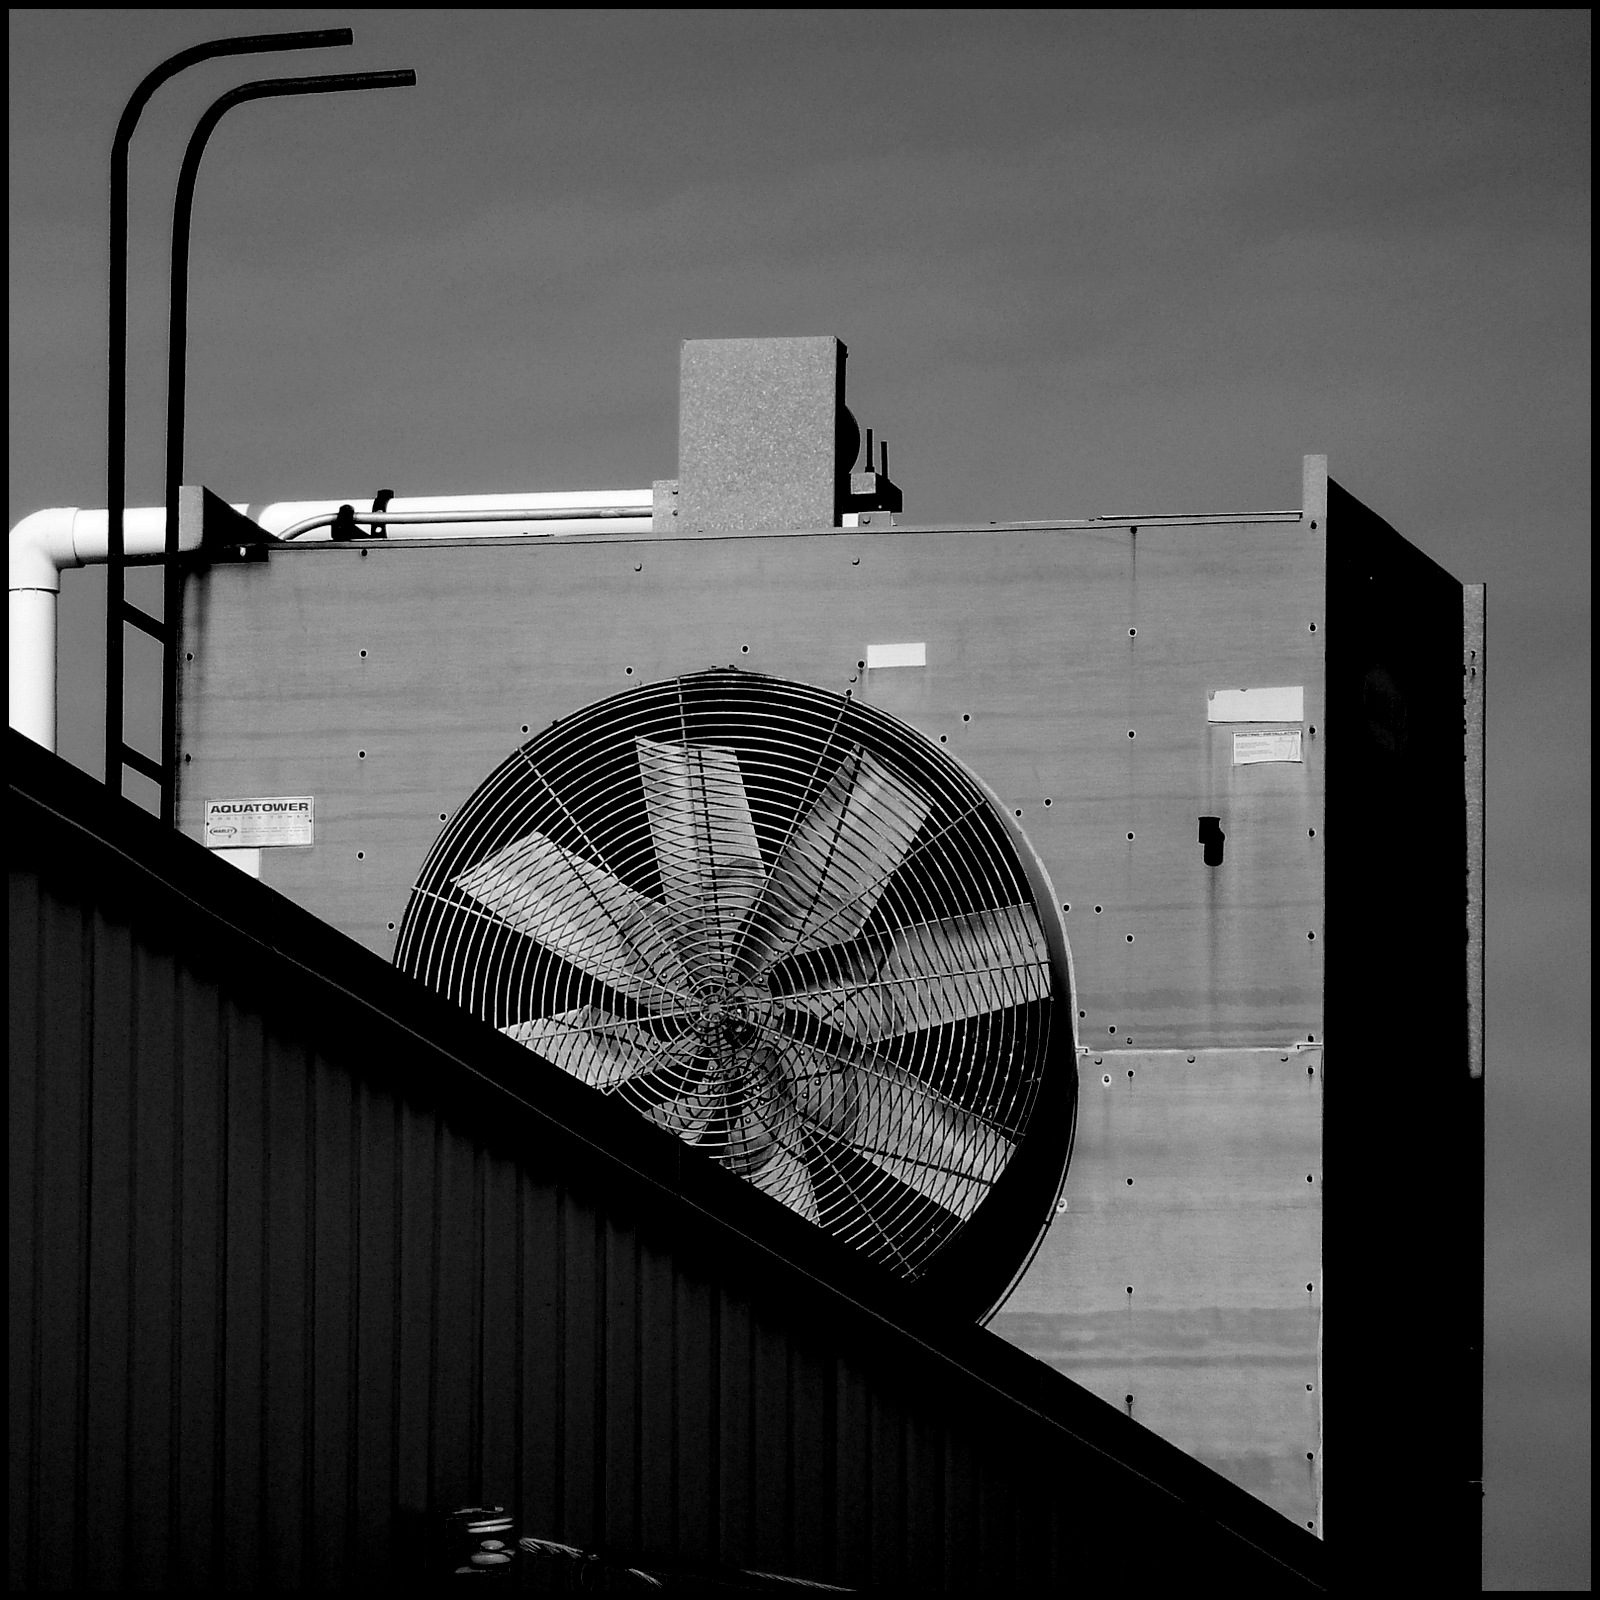 Cooling Tower Fan : File cooling tower fan g wikimedia commons